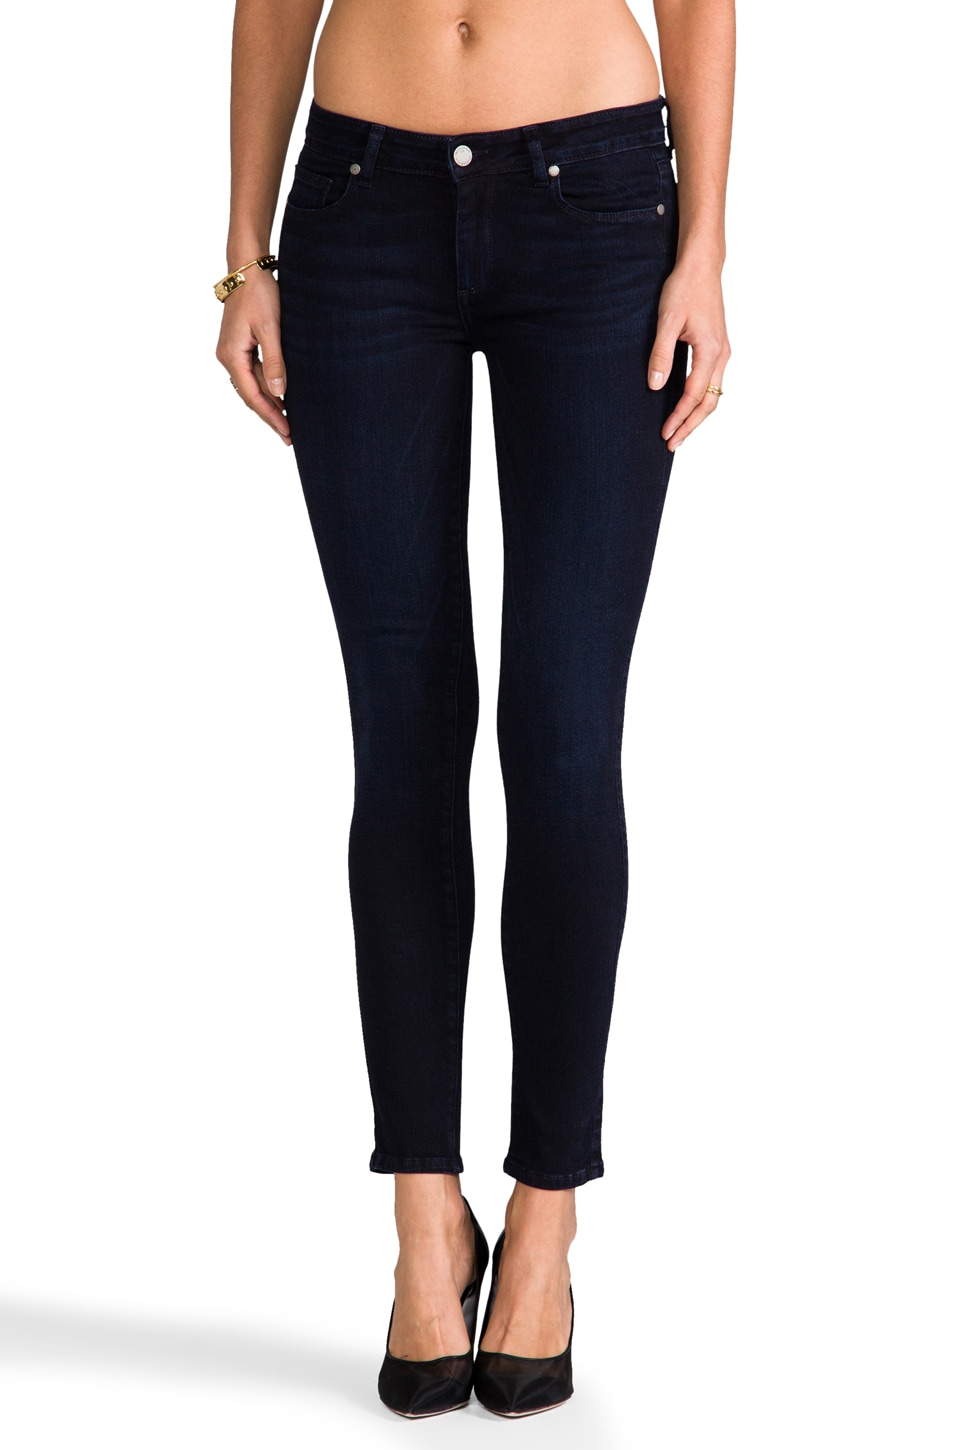 PAIGE Denim Verdugo Ultra Skinny in Peyton